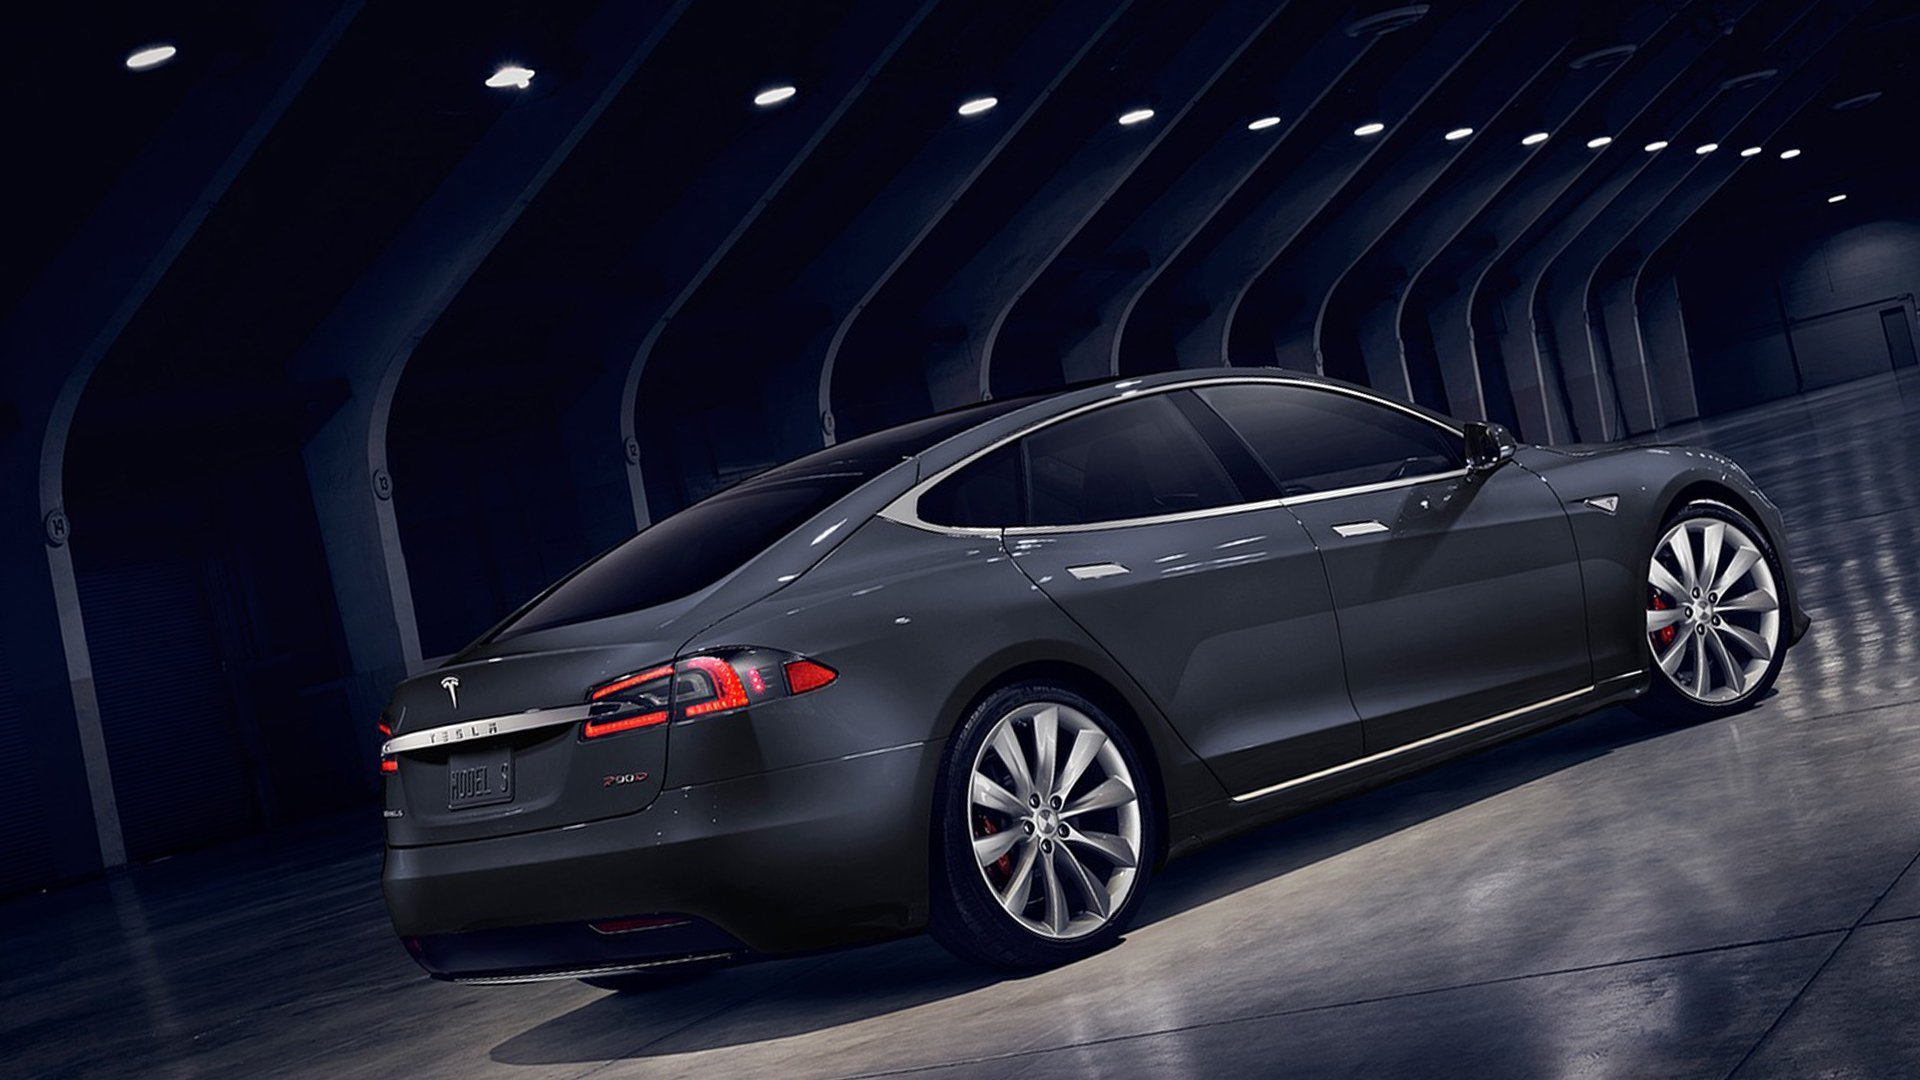 Images Tesla Model S 2019 HD